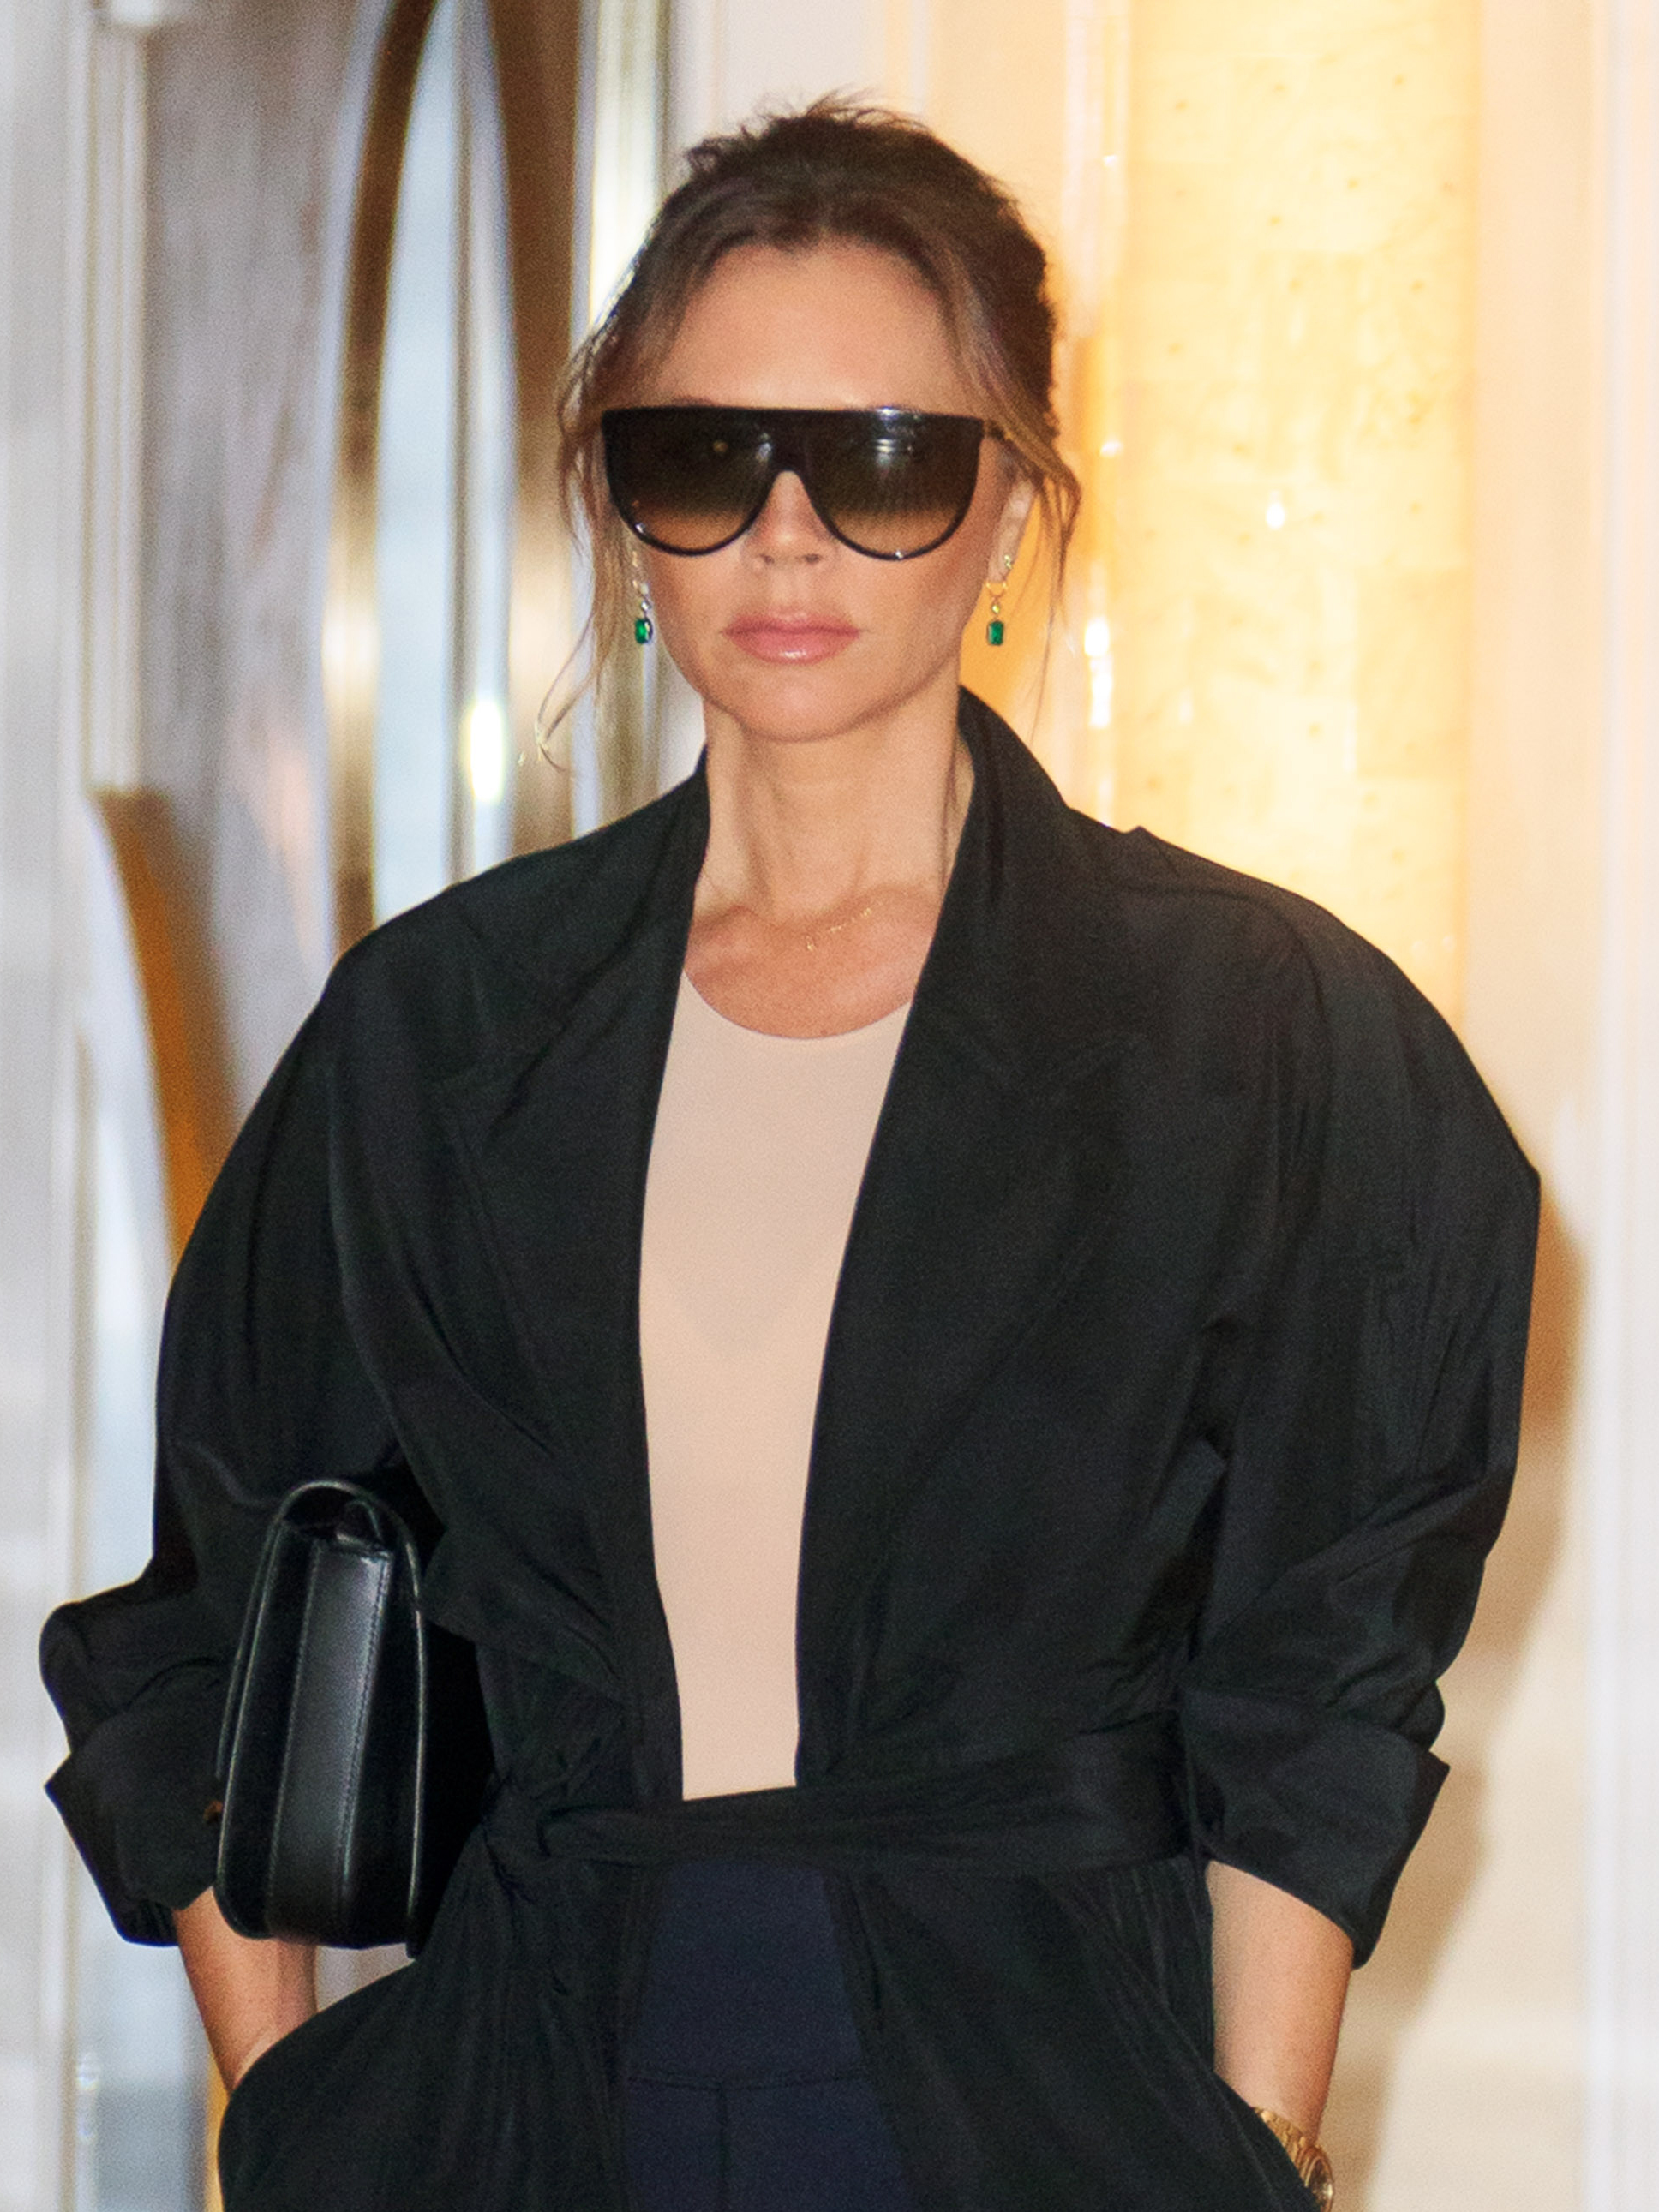 Victoria Beckham breaks protocol by wearing THIS dress to celebrity wedding